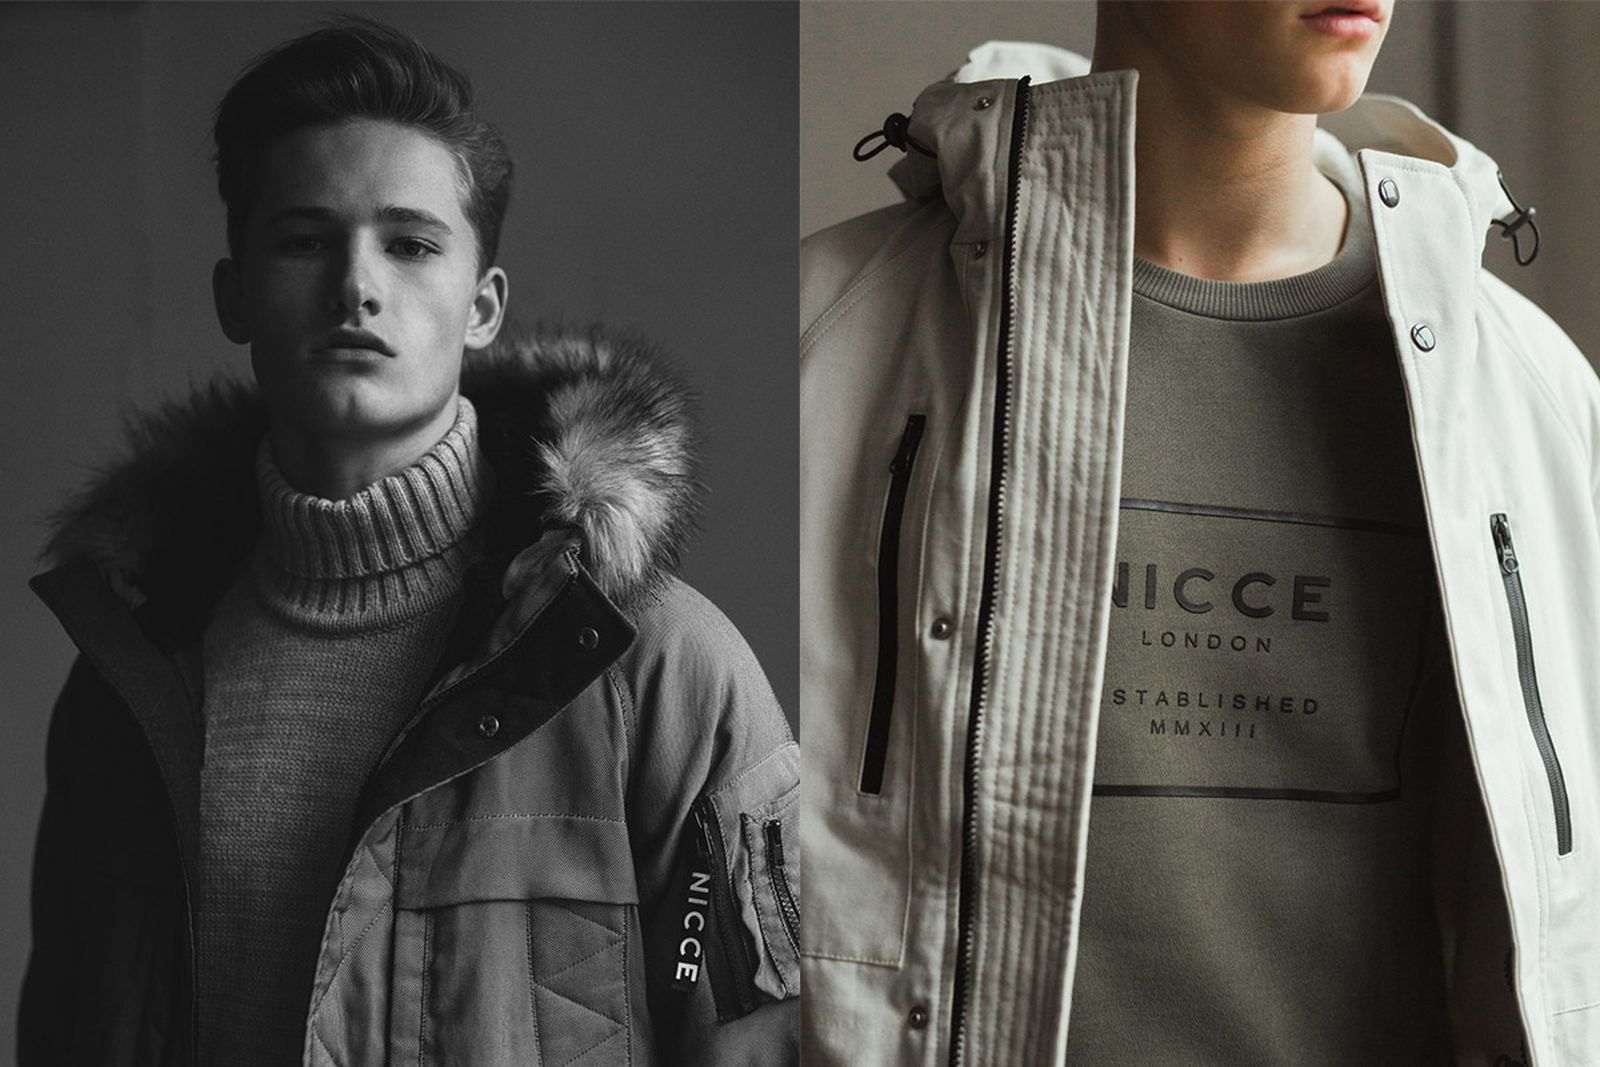 nicce-fw16-collection-02